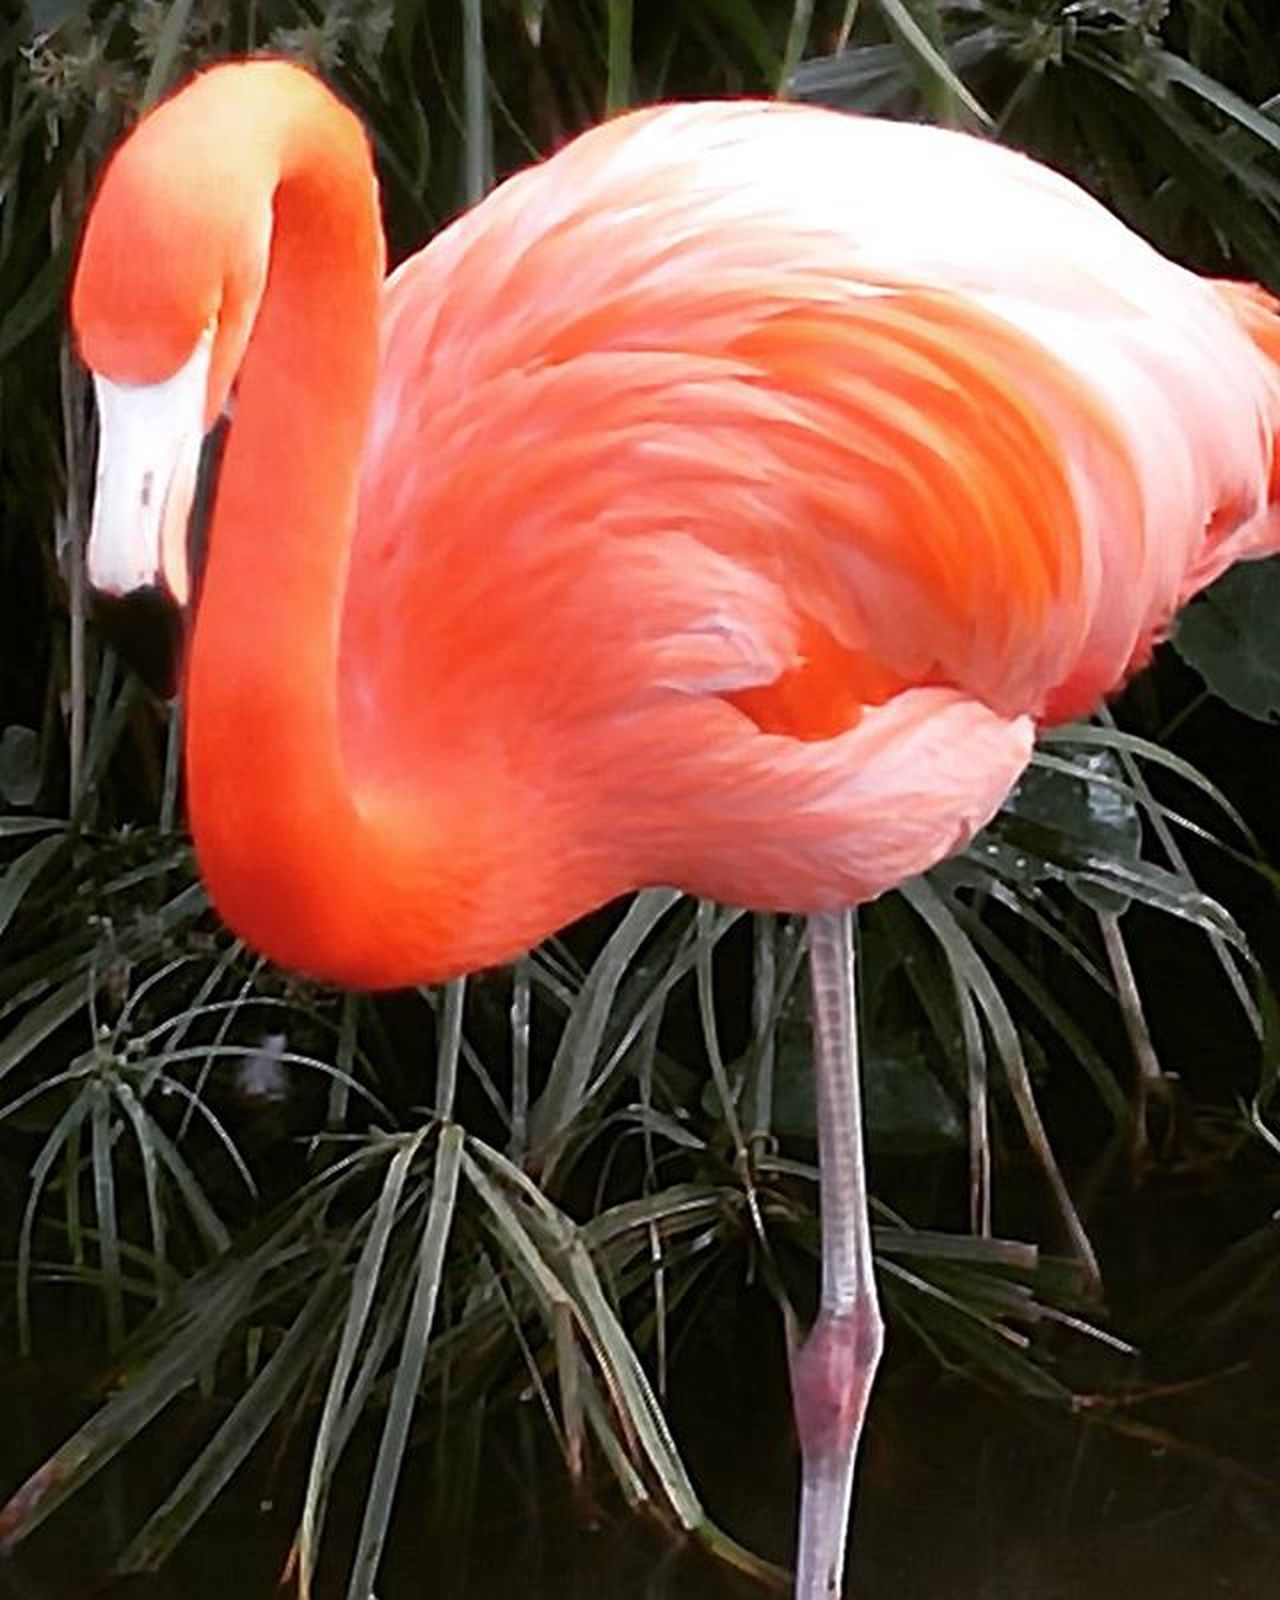 Flamingo Color Contrast Florida Primeshots Igpowerclub Picoftheday Igprimeshots Fiftyshades_of_nature Colorexplosion Photography